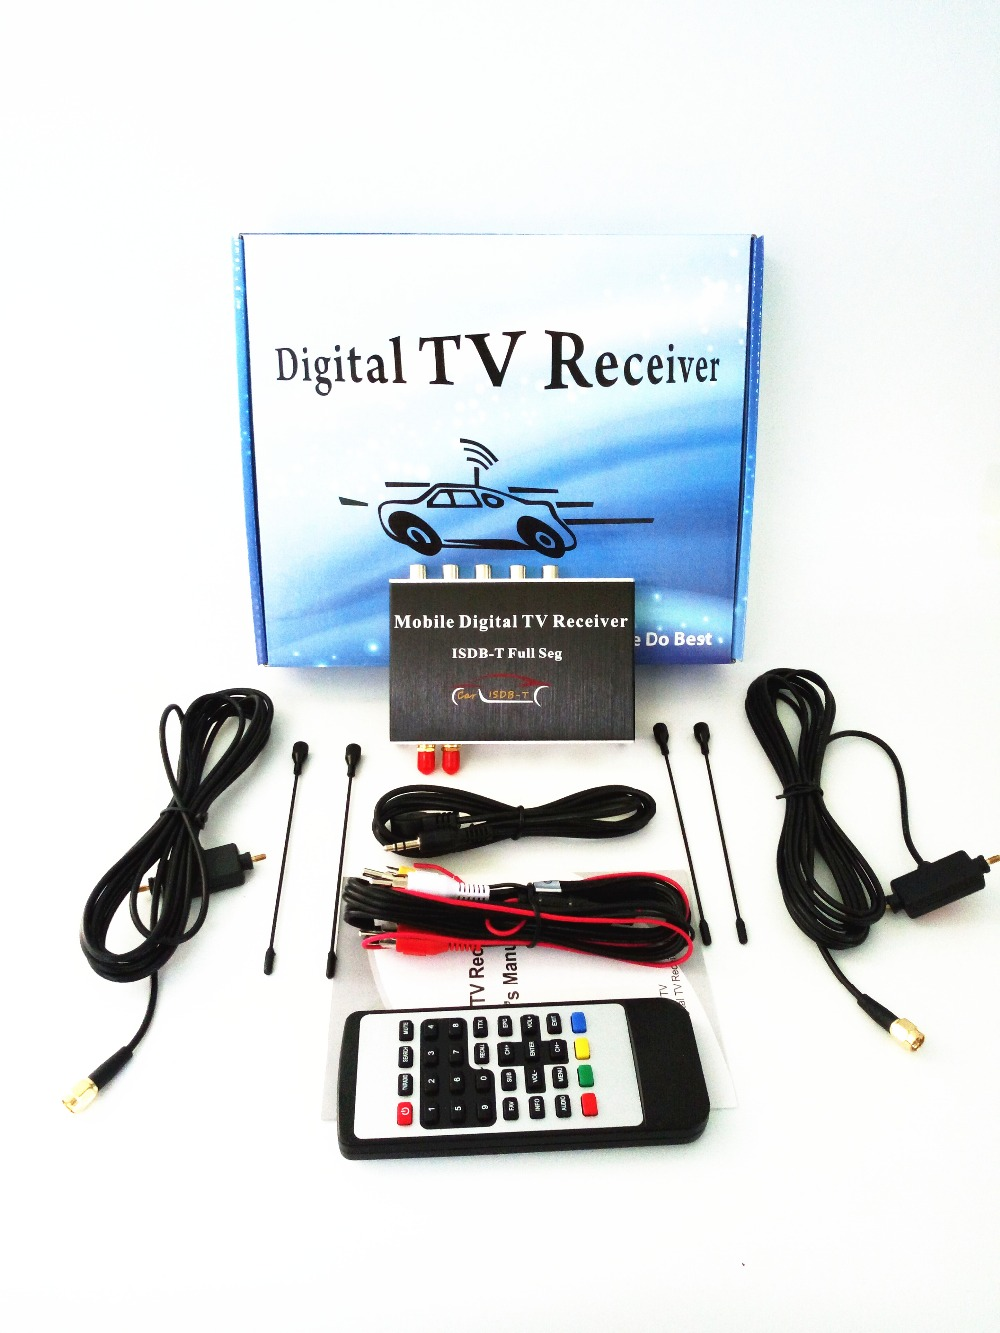 Honesty Double Antenna Isdb-t Full Seg Car Digital Tv Receiver 250km/h For Philippines Japan South America (brazil Chile Argentina Peru) At Any Cost